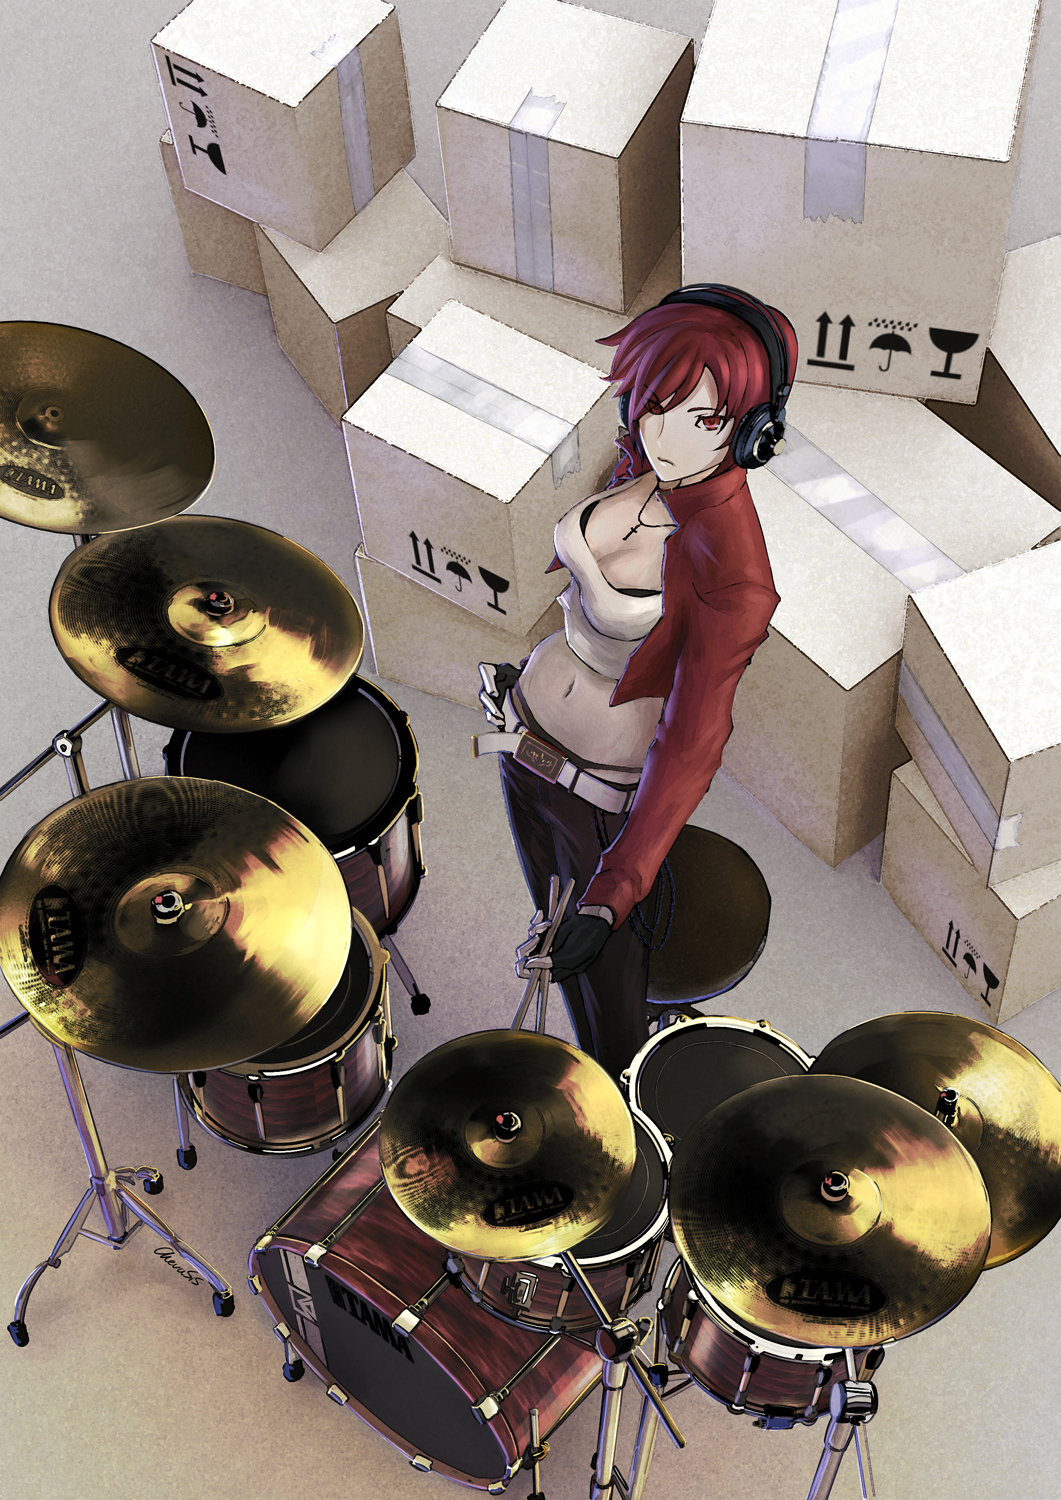 bad_id belt box cardboard_box casual chevasis drum drumsticks fingerless_gloves from_above gloves headphones highres instrument jewelry meiko midriff navel necklace red_eyes red_hair redhead short_hair vocaloid whale_tail